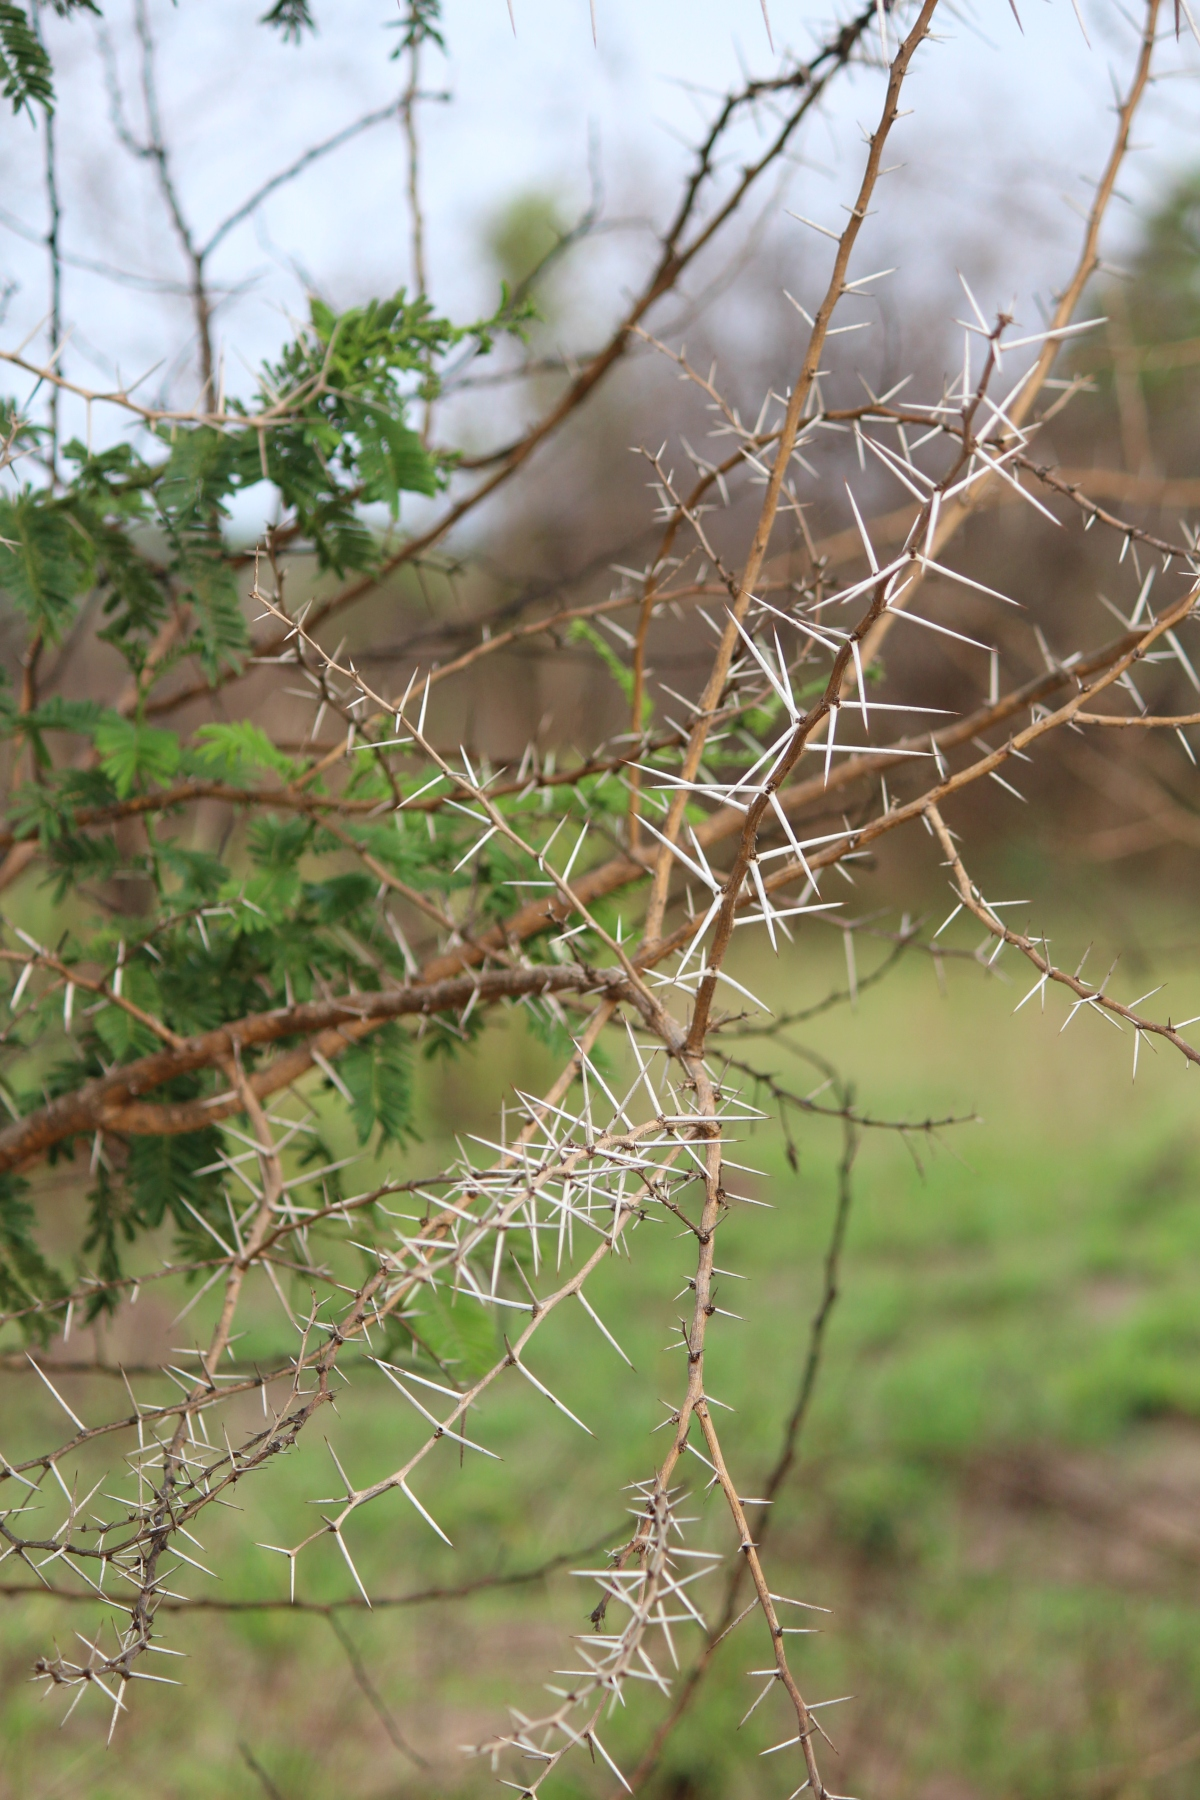 Thorny bush at Murchison Falls National Park